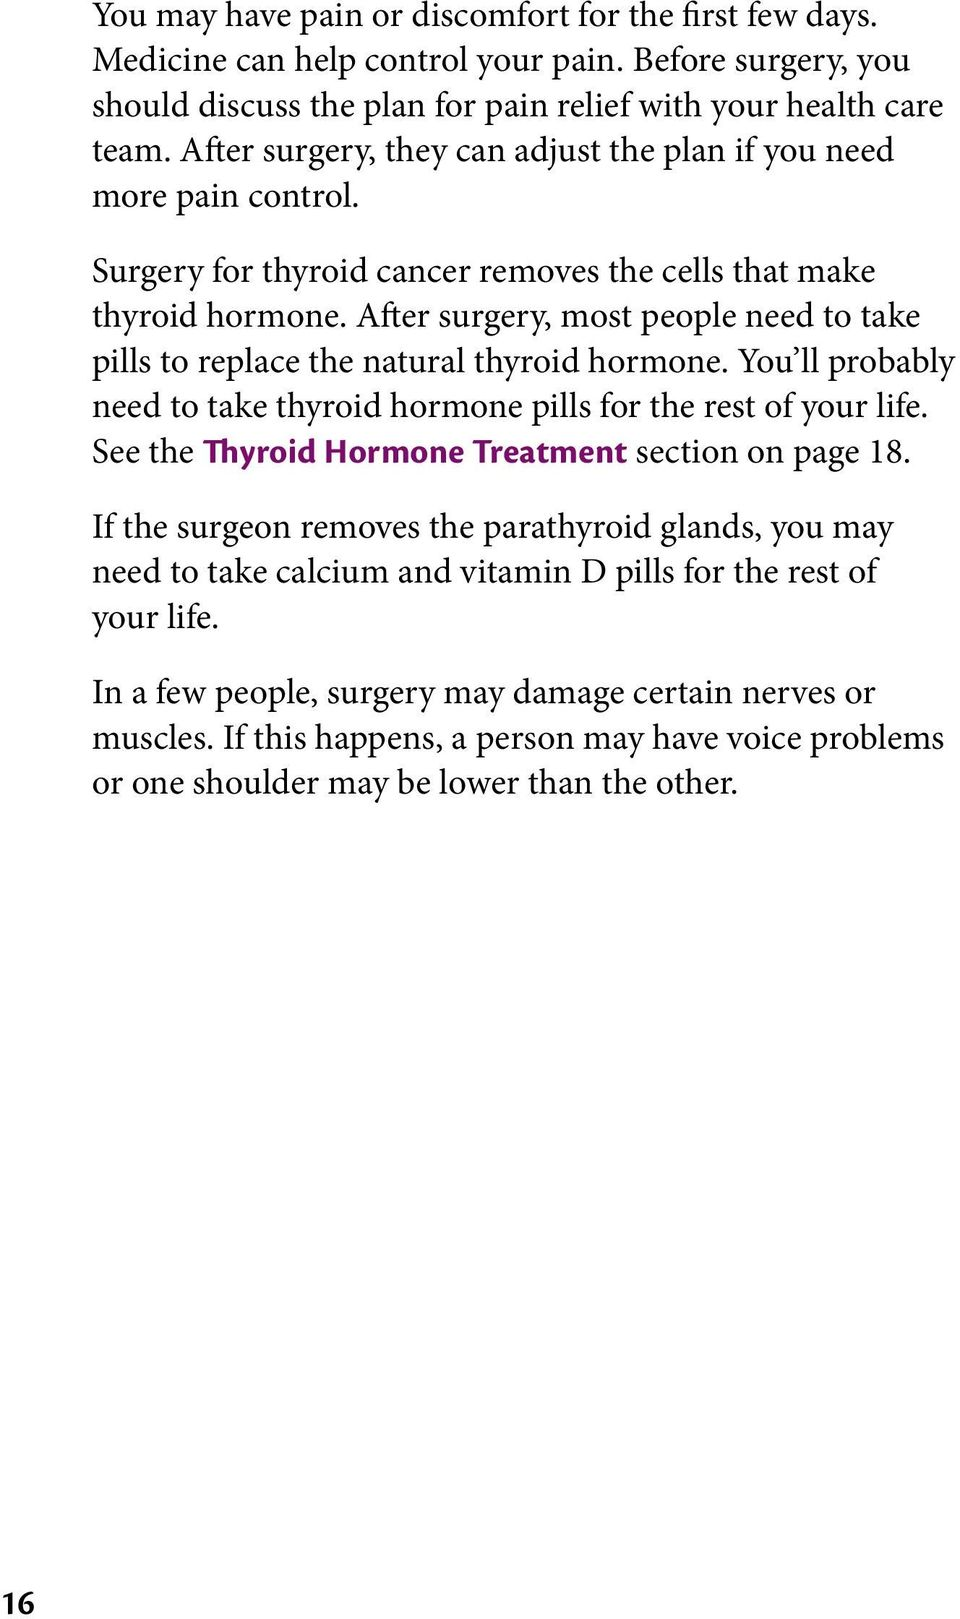 After surgery, most people need to take pills to replace the natural thyroid hormone. You ll probably need to take thyroid hormone pills for the rest of your life.